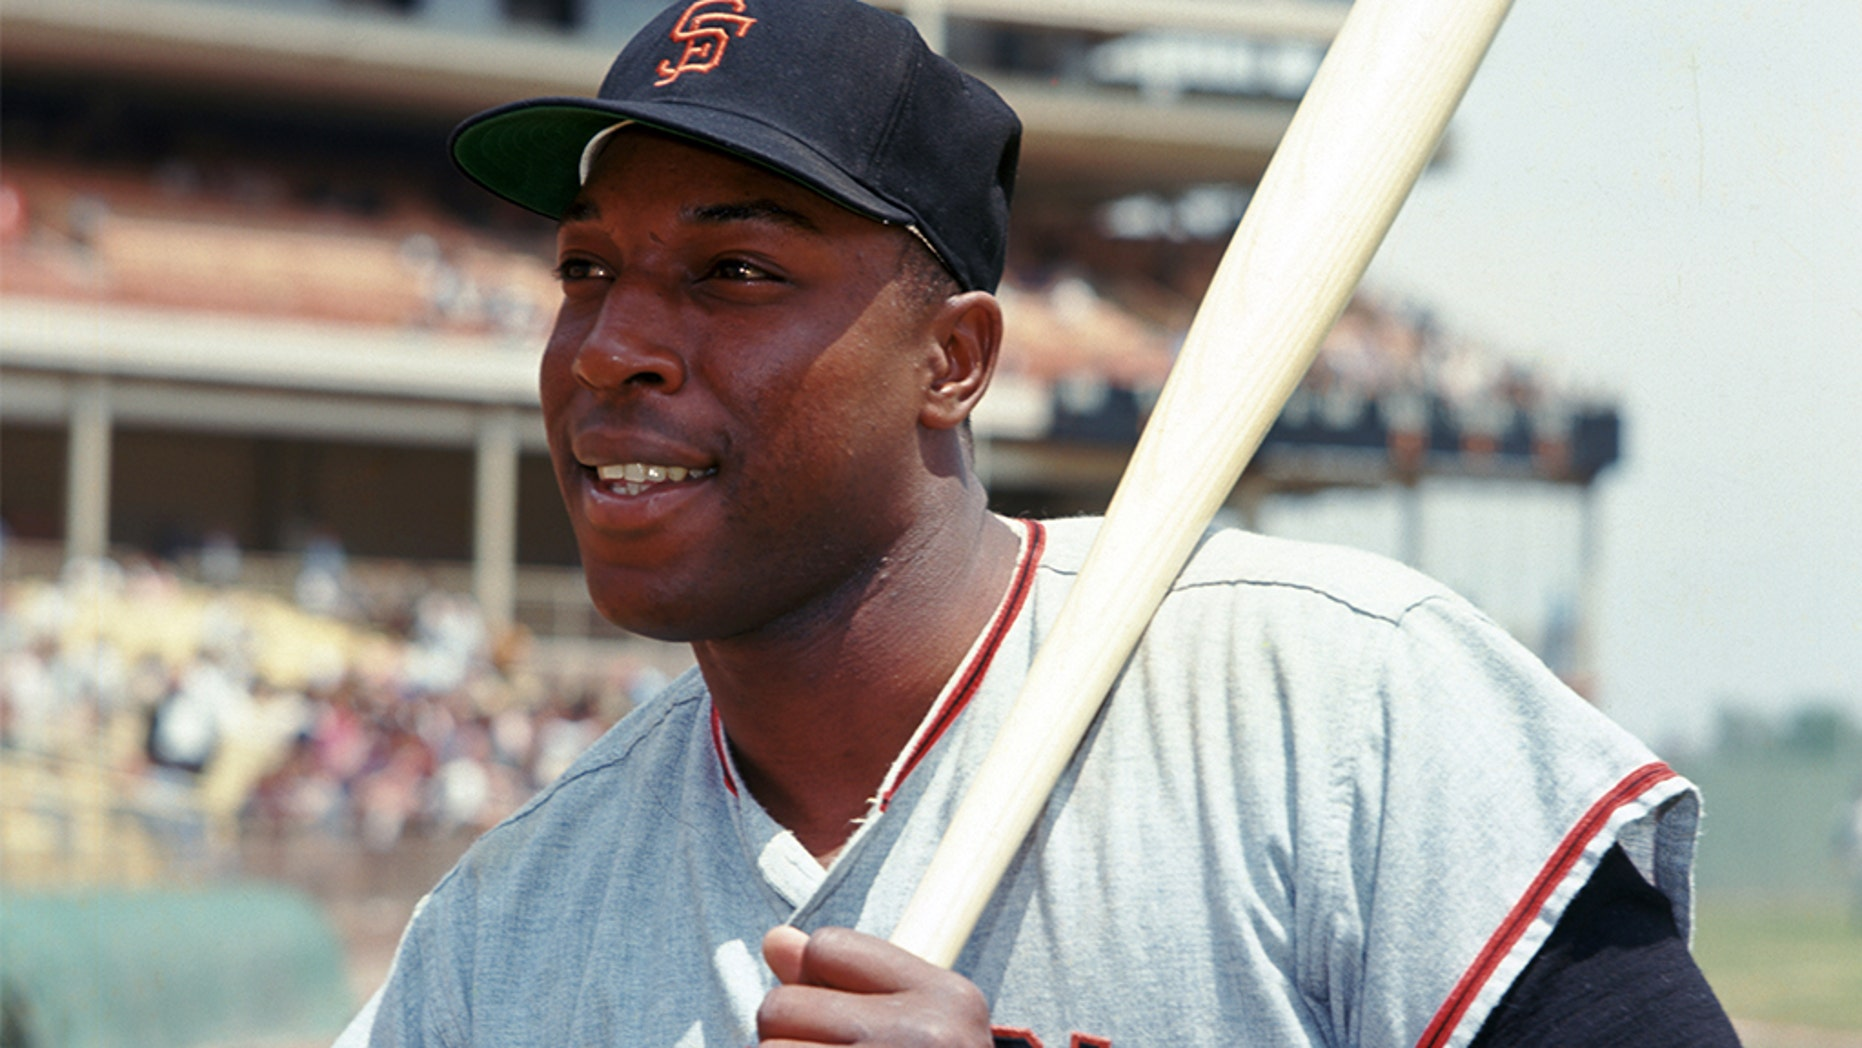 Giants Hall of Famer Willie McCovey dies at age 80